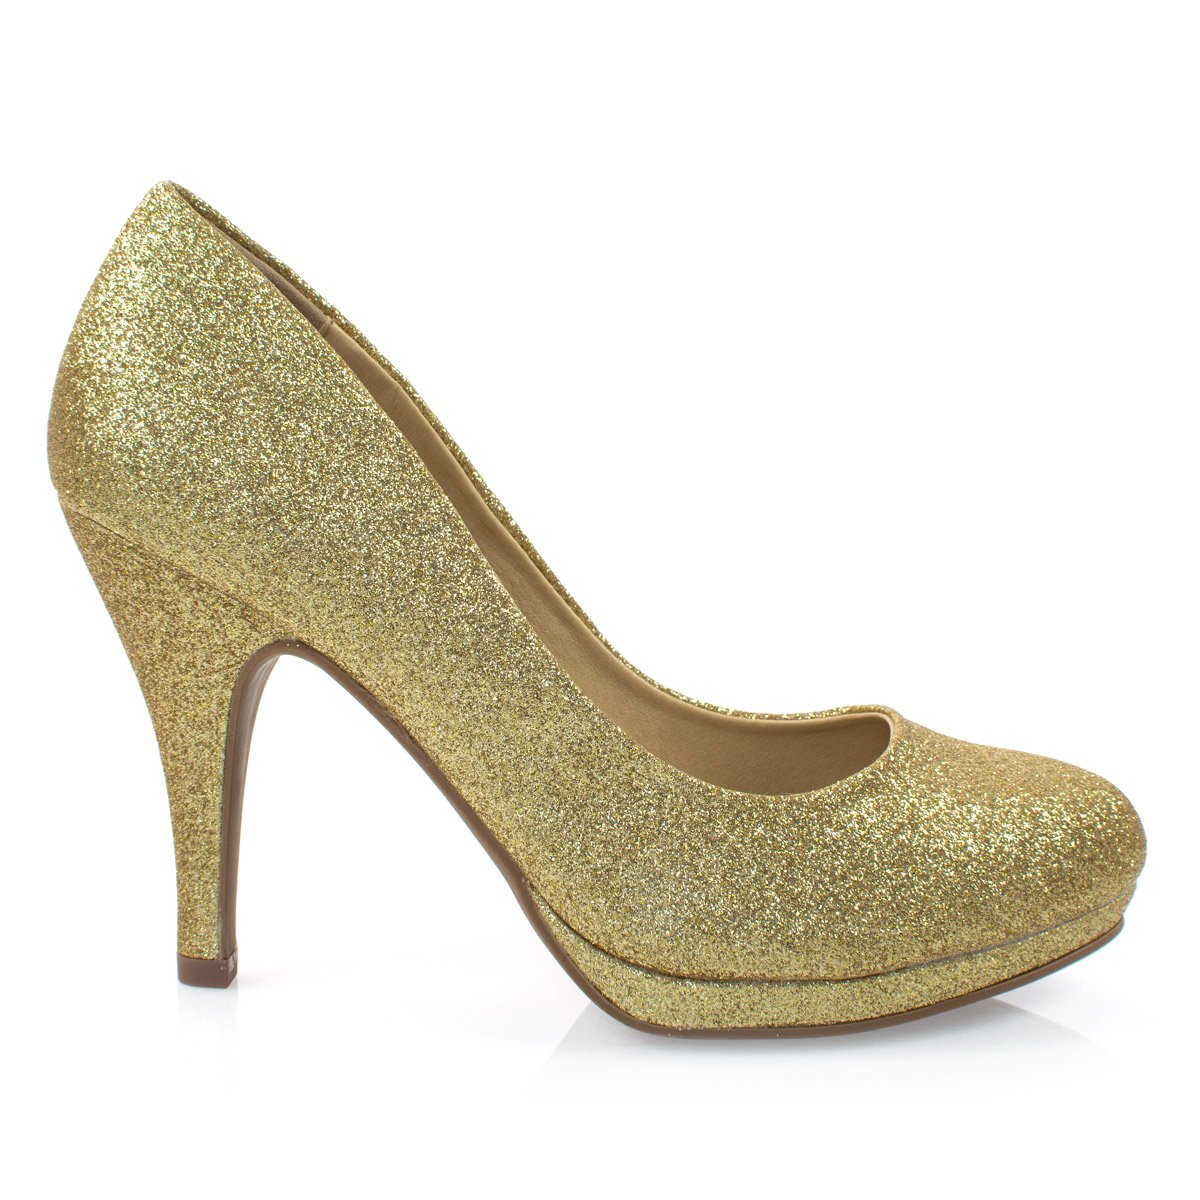 Women's Classic Dress Pump W Extra Cushioned in Sole Round Toe & Platform,Goldglt,8 by City Classified (Image #1)